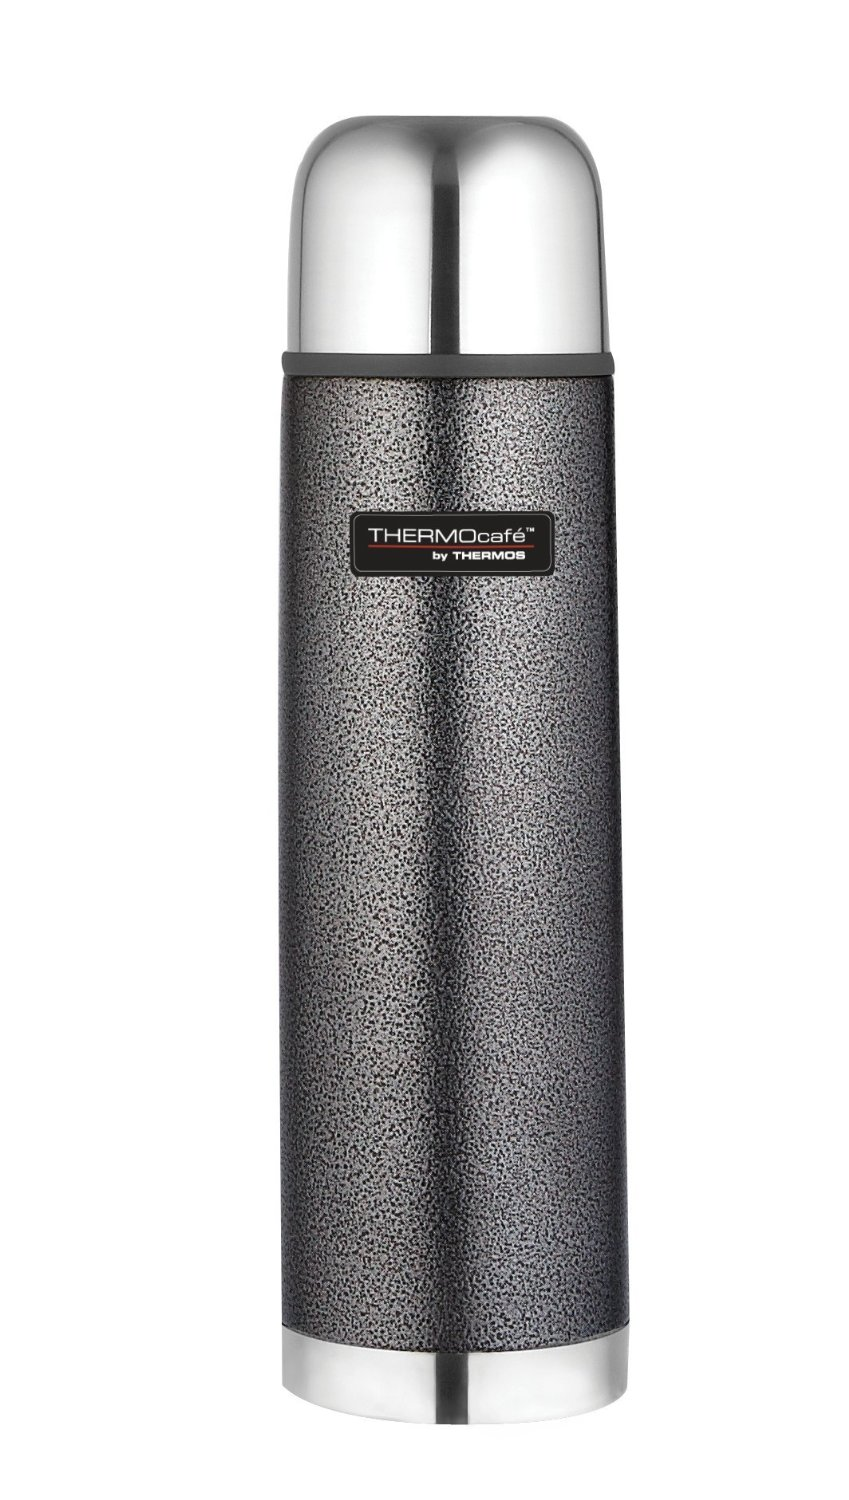 bargain thermos thermocafe 1 litre stainless steel hammertone flask 8 at amazon gratisfaction uk. Black Bedroom Furniture Sets. Home Design Ideas